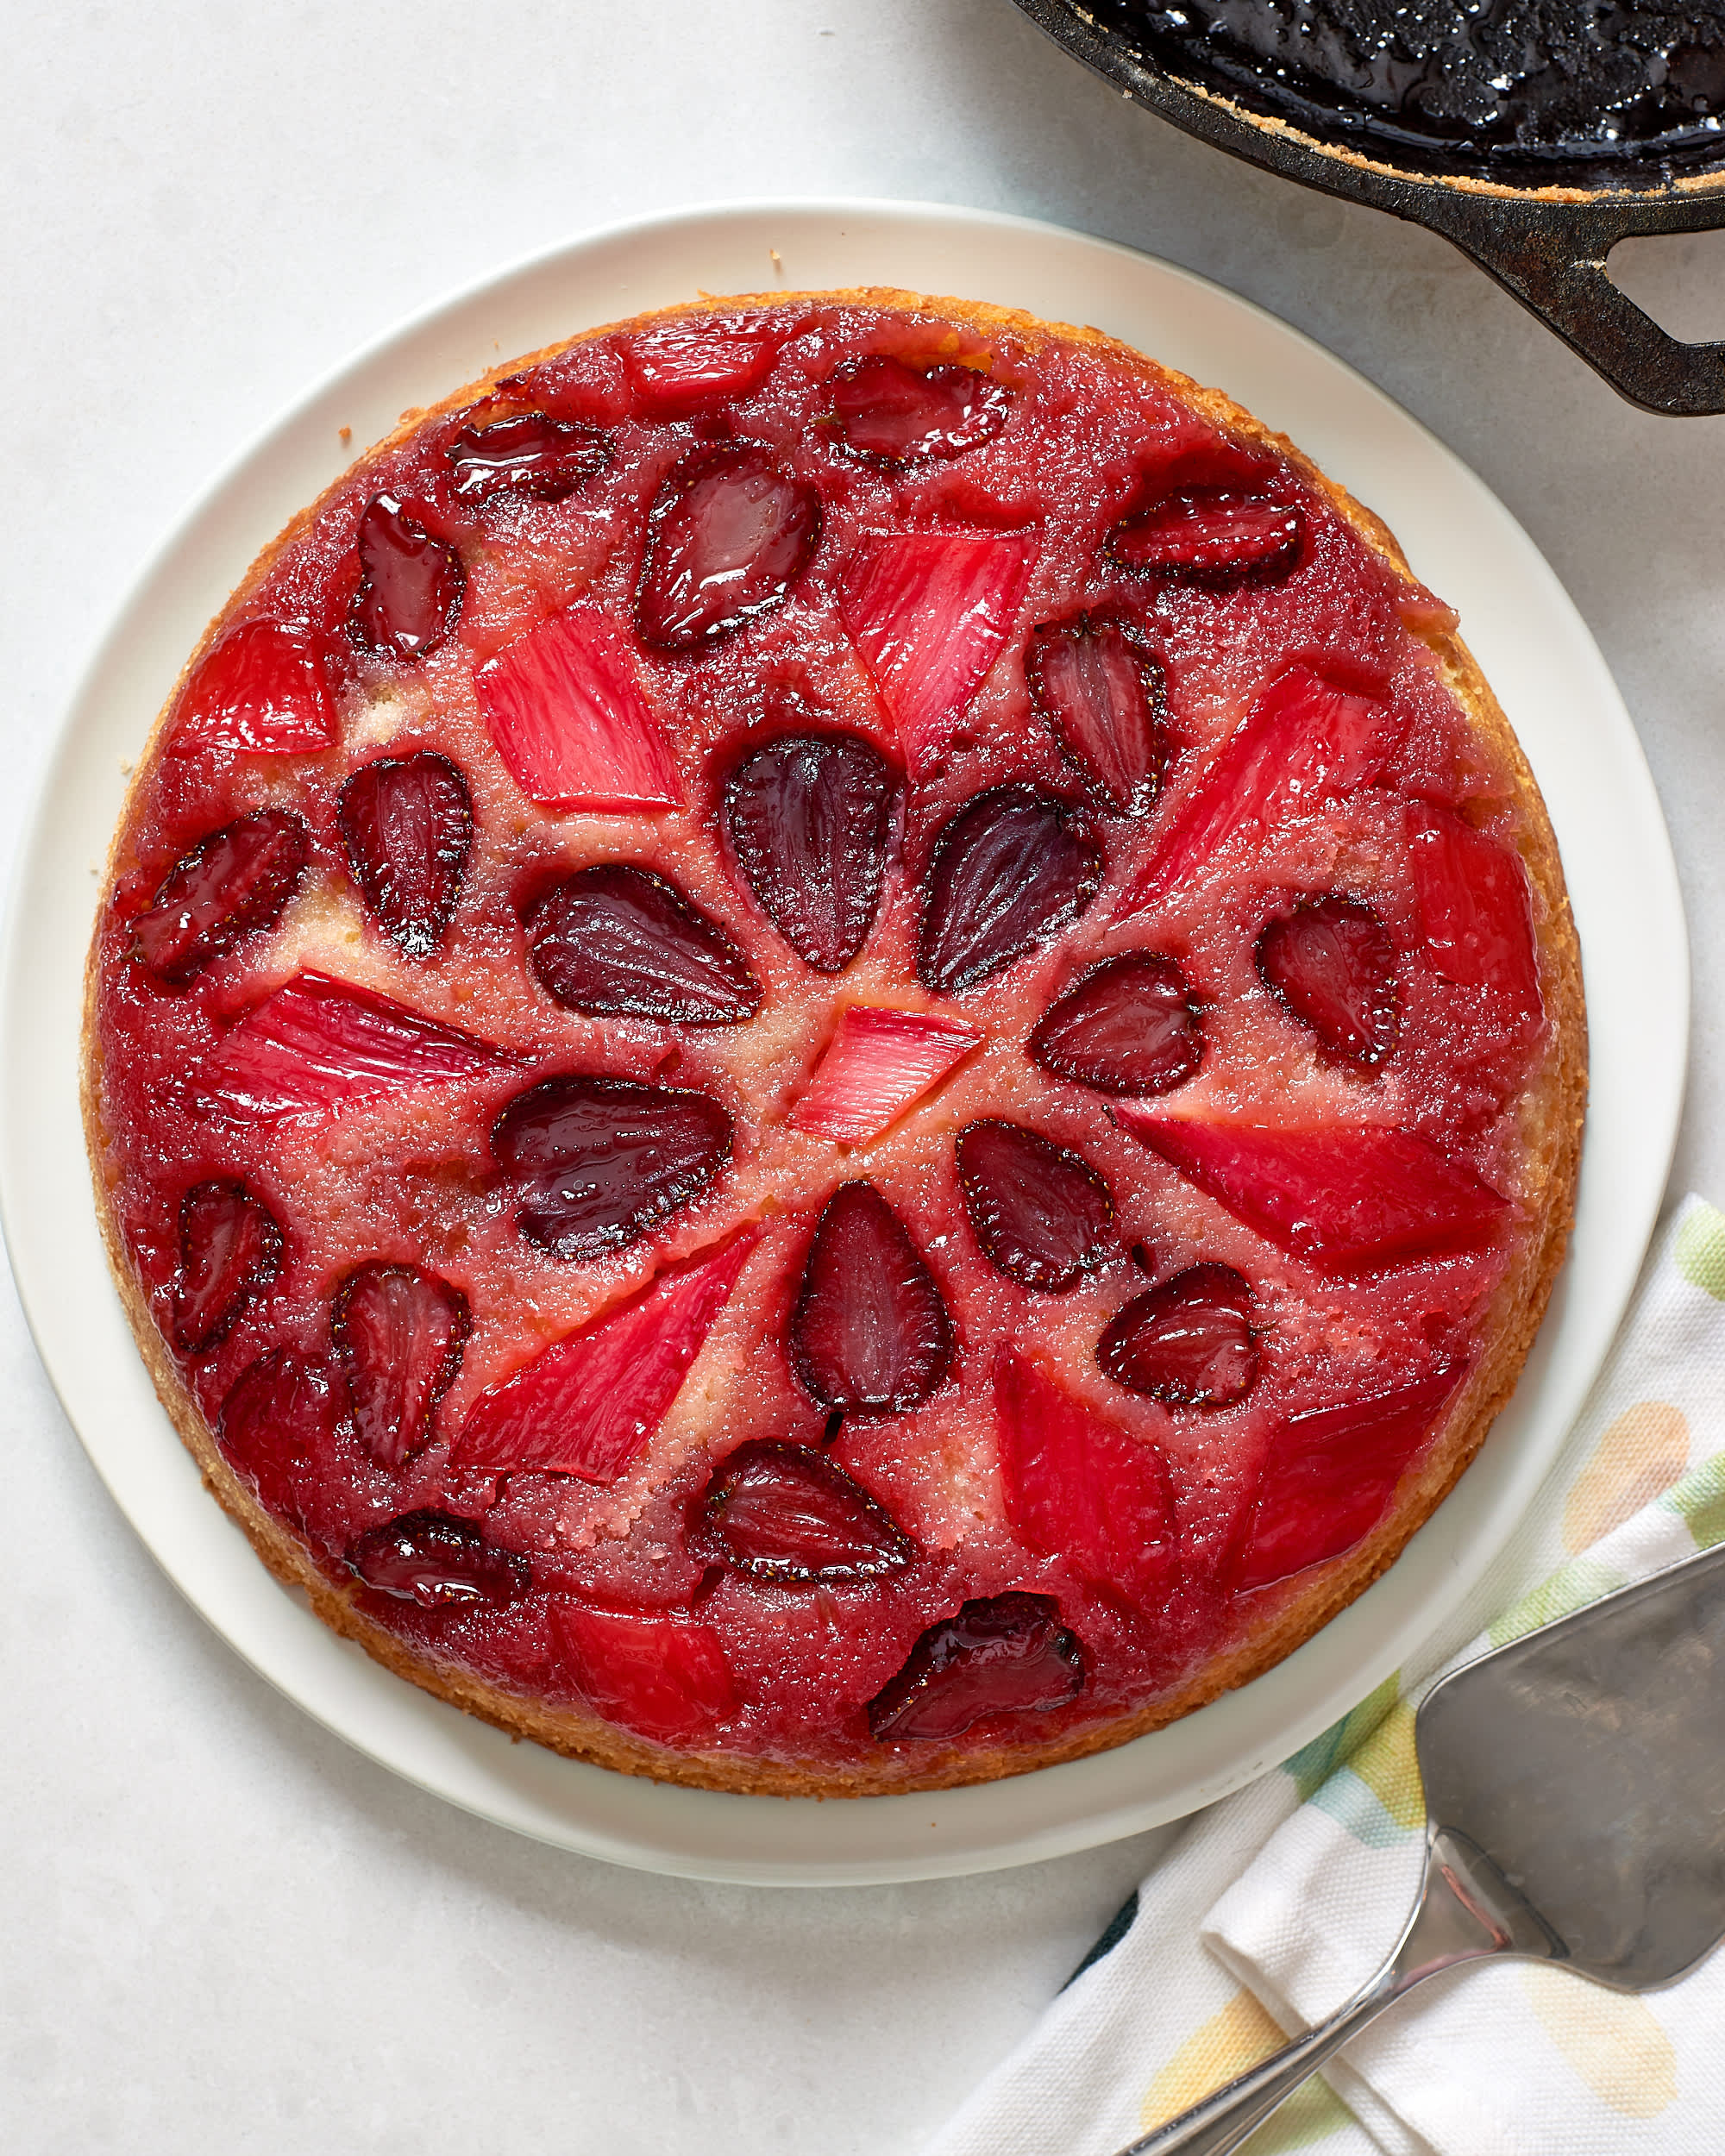 How To Make an Upside-Down Cake with Almost Any Fruit: gallery image 1